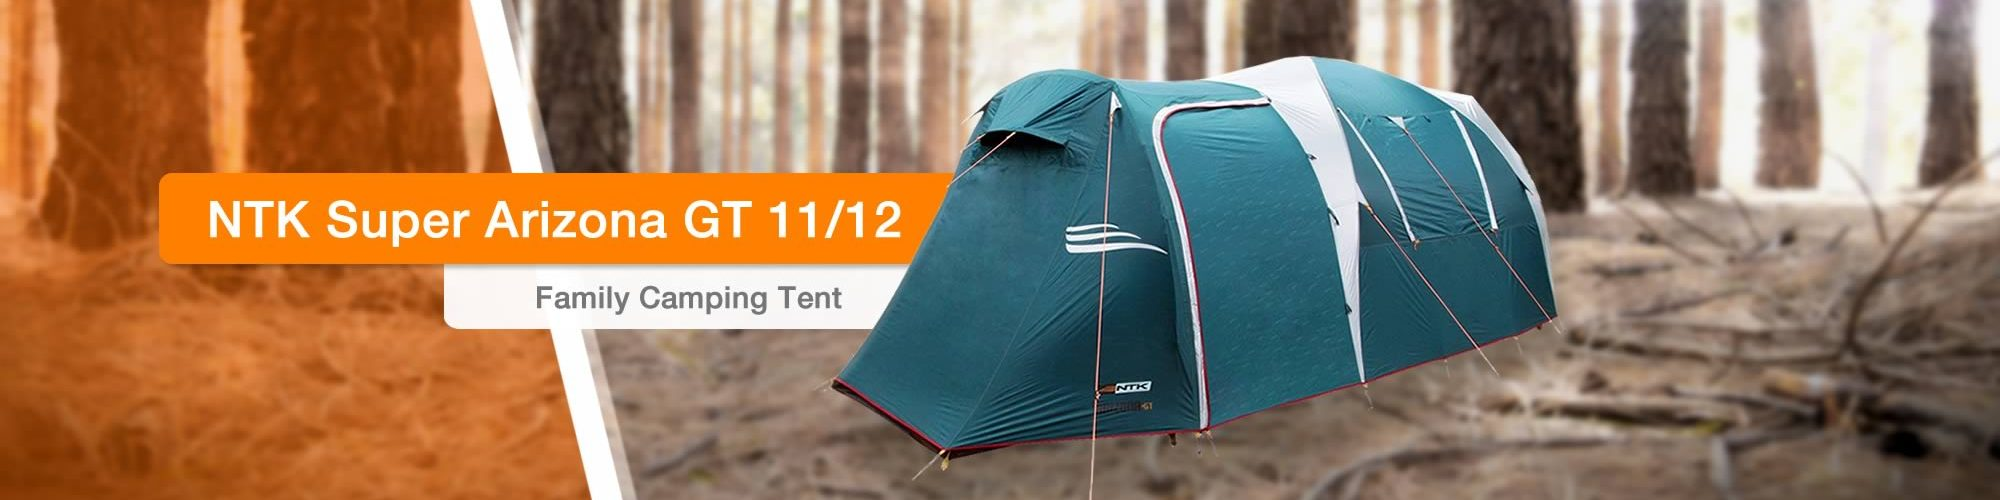 NTK Super Arizona GT 11/12 Tent